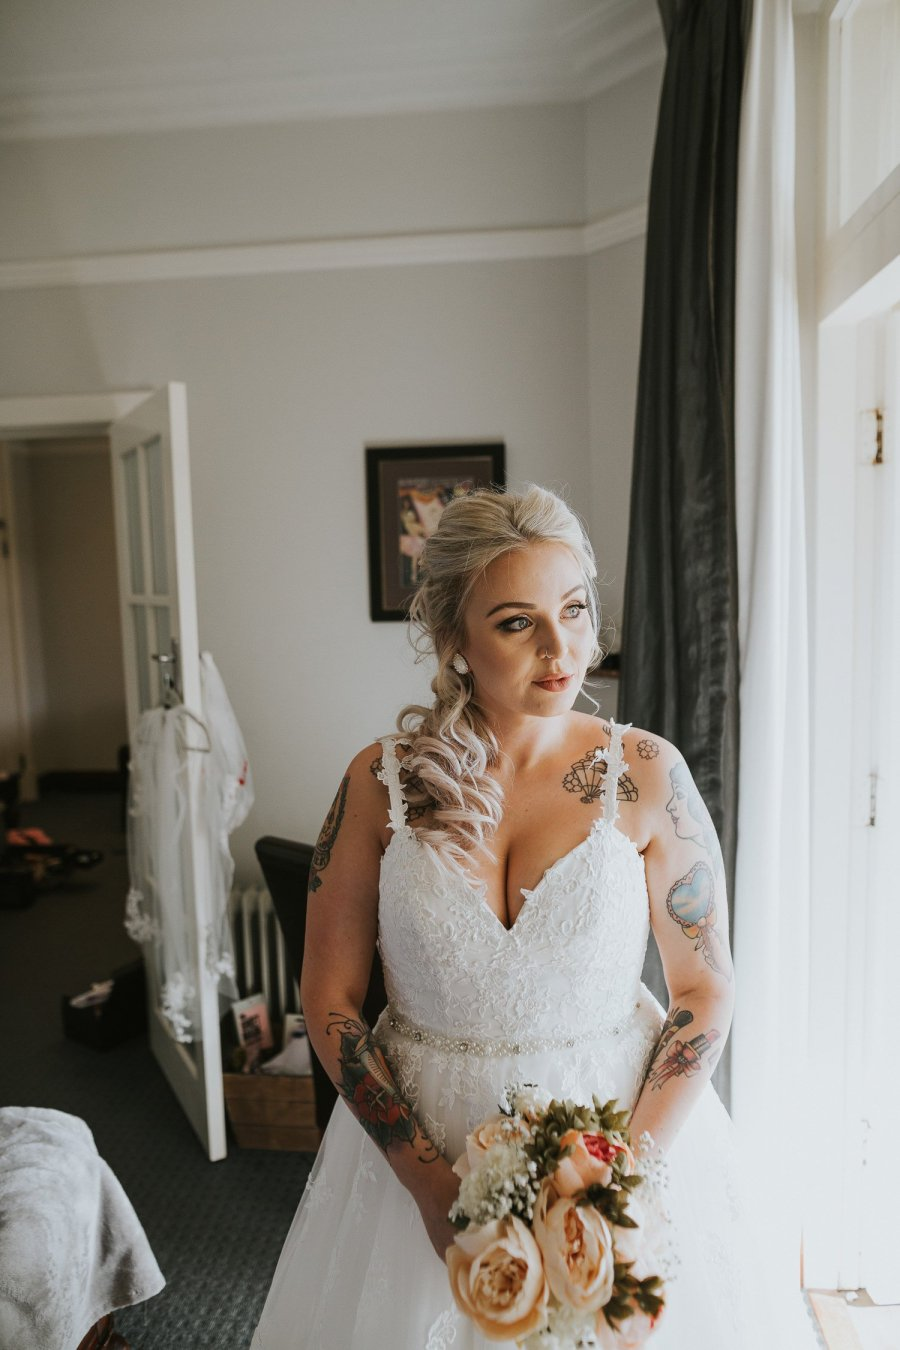 Ebony Blush Photography | Perth Wedding Photographer | Kate + Gareth | Yallingup Wedding Photos201